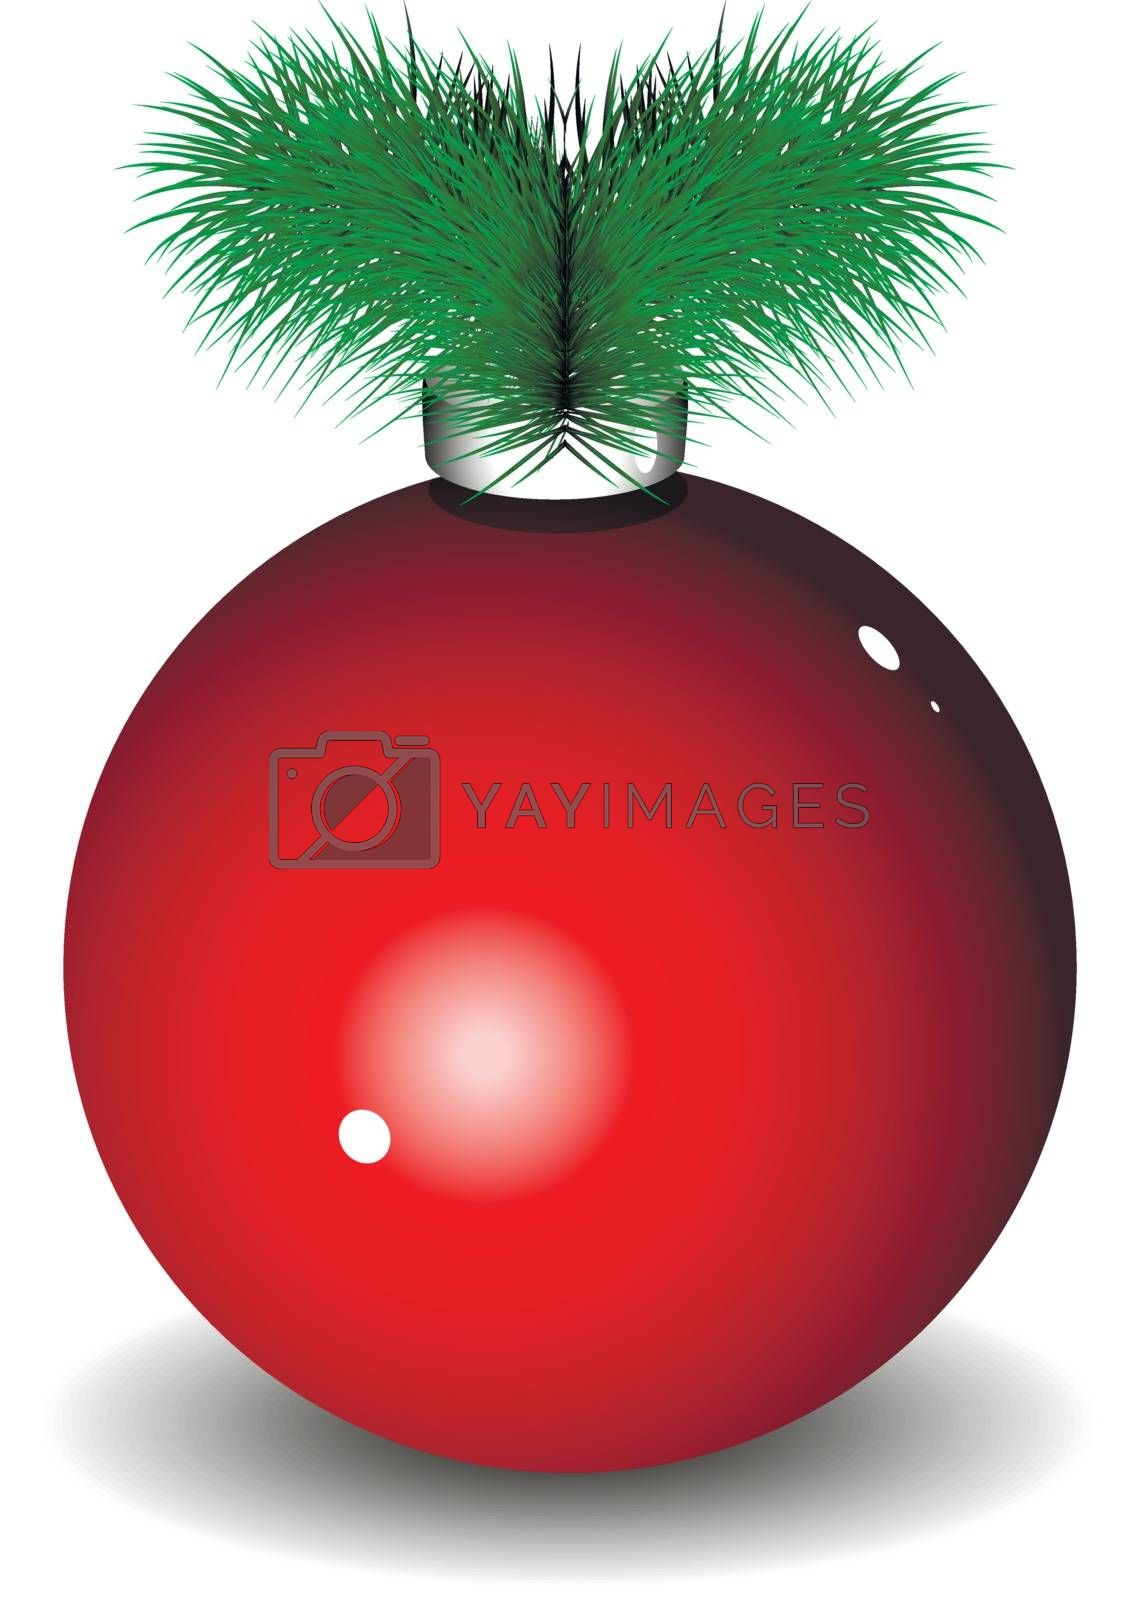 Illustration of a red New Year ball with Christmas tree